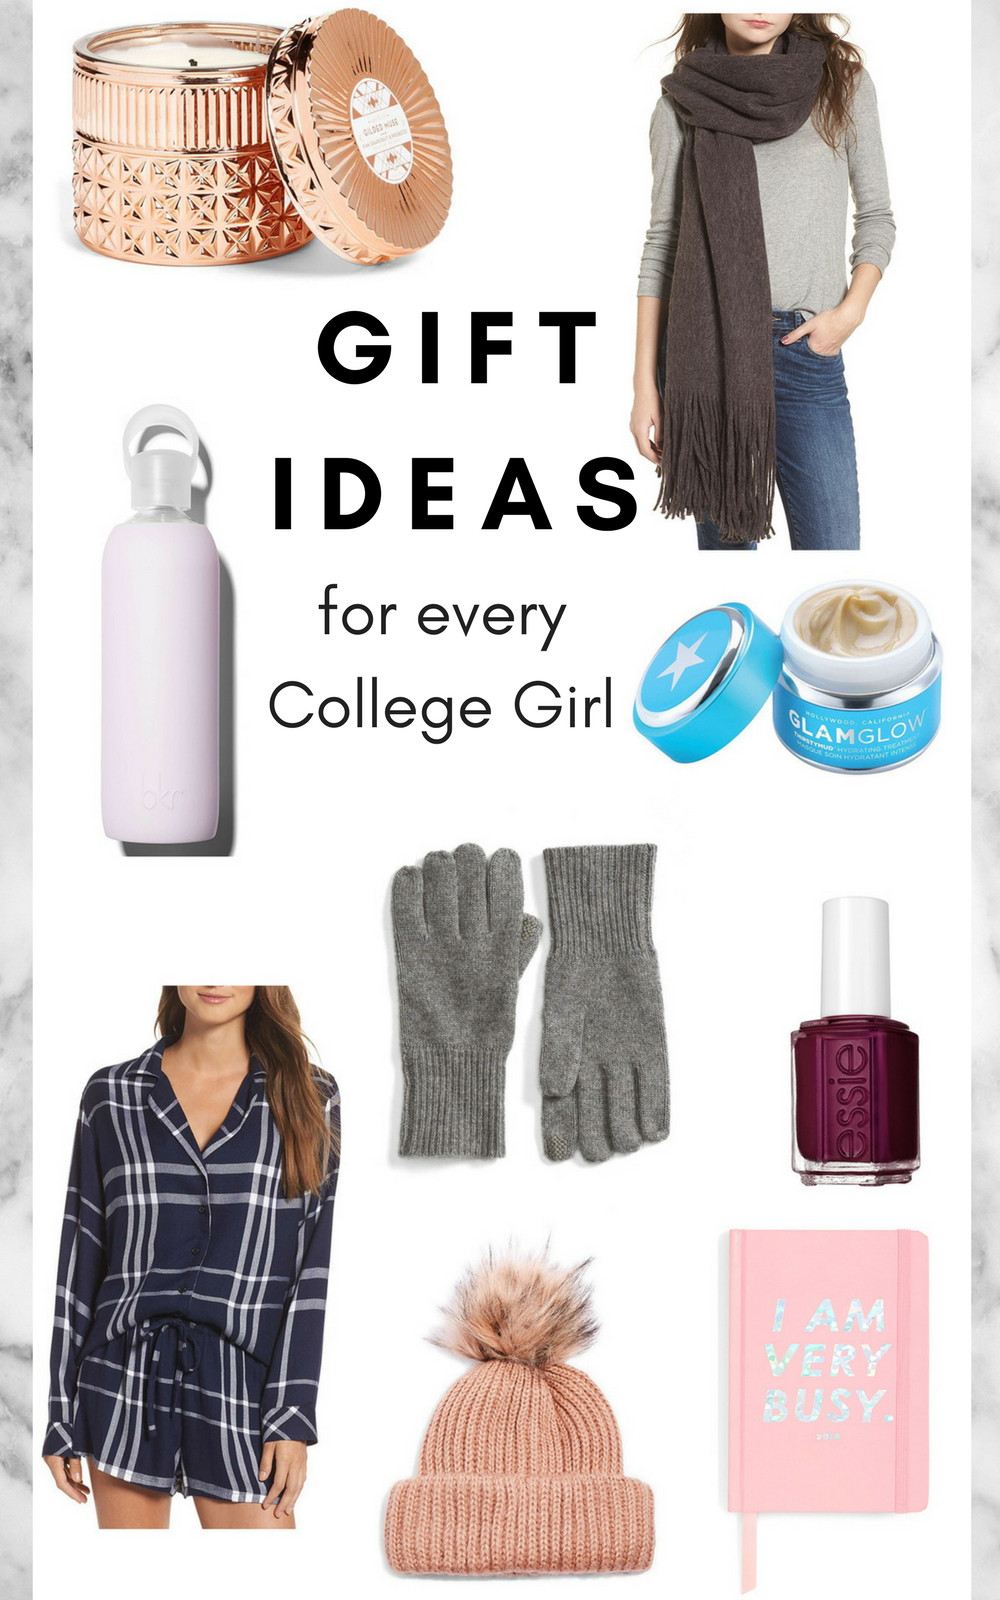 Gift Ideas for College Girls 2017: A Gift Guide for the College Girl ...